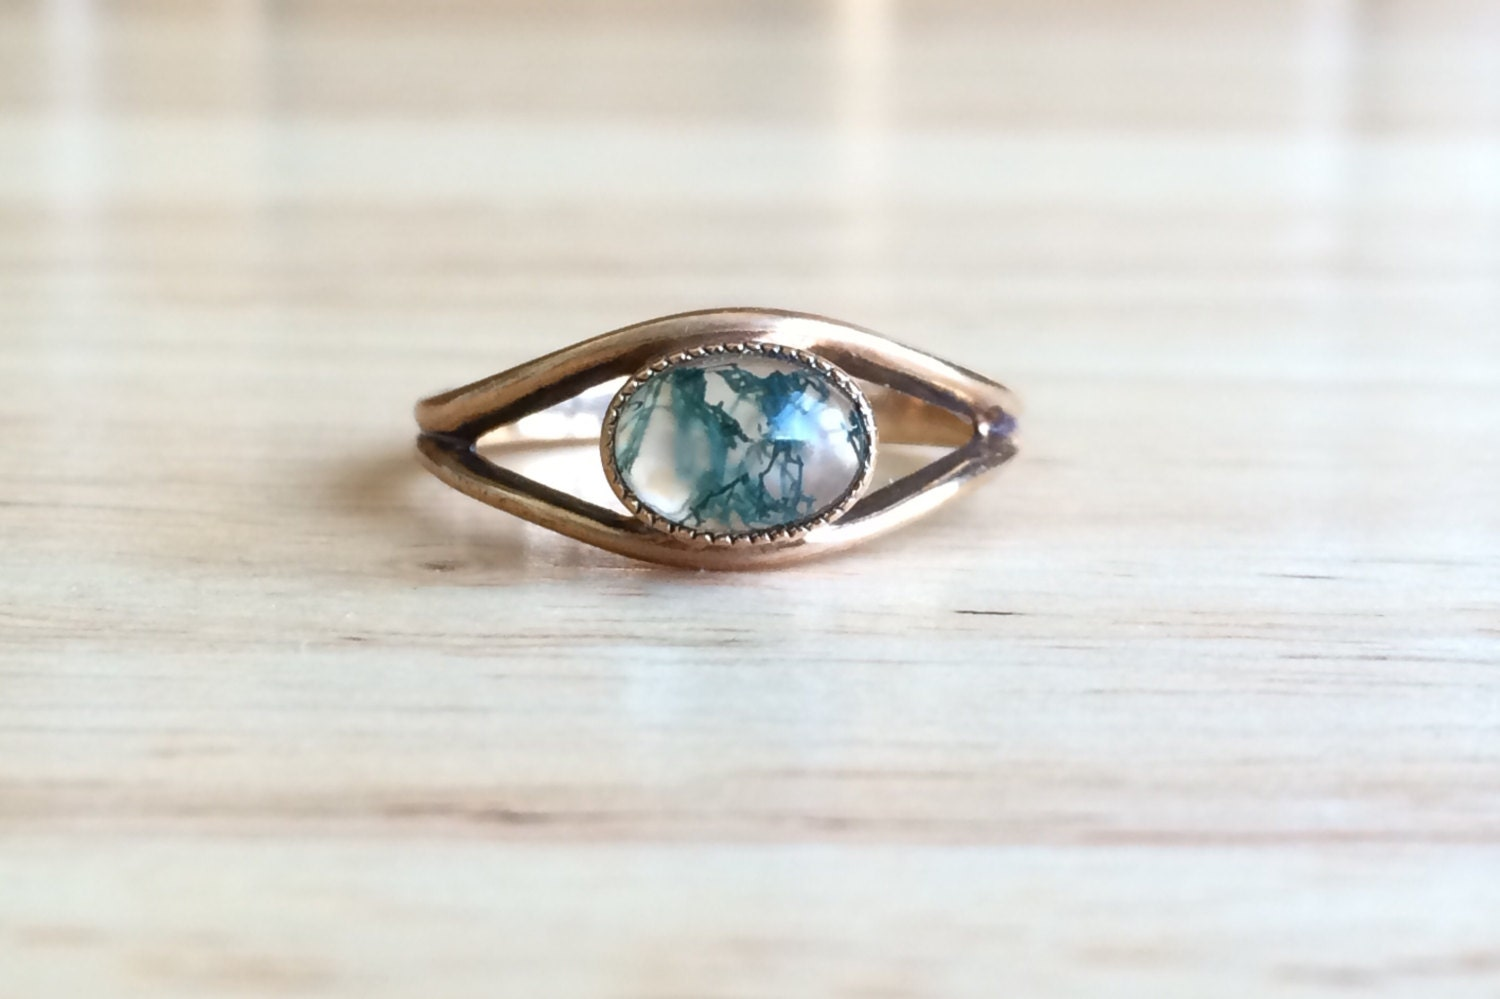 Golden Moss Agate: Vintage 9ct Yellow Gold Moss Agate Stone Eye Ring Size 7